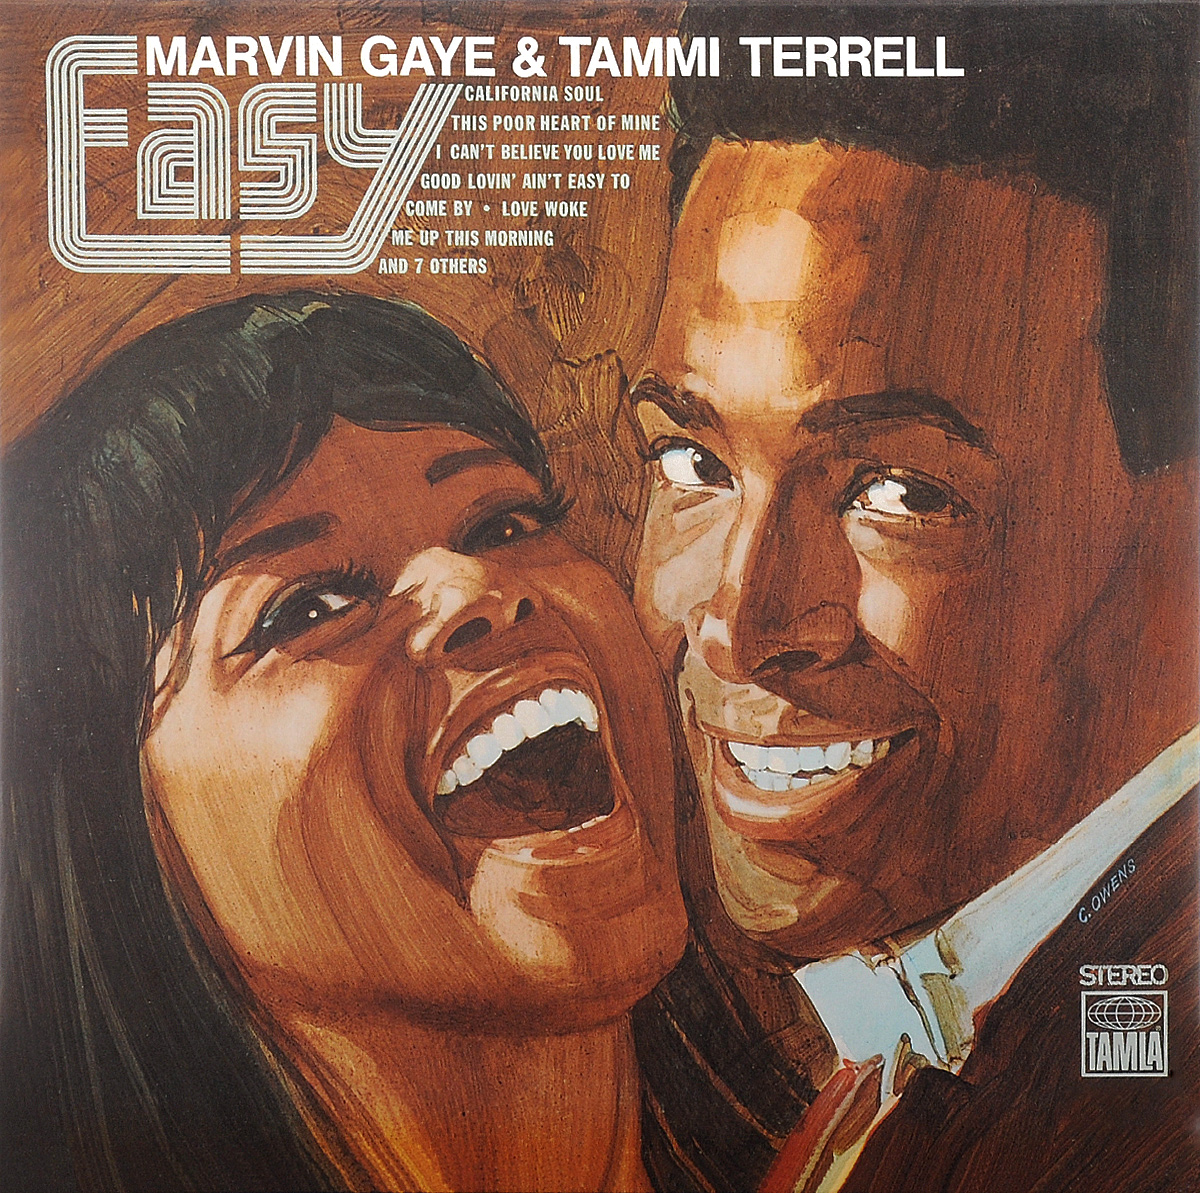 Марвин Гэй,Тамми Тэррелл Marvin Gaye & Tammi Terrell. Easy (LP) виниловые обои grandeco ideco persian chic pc 2301